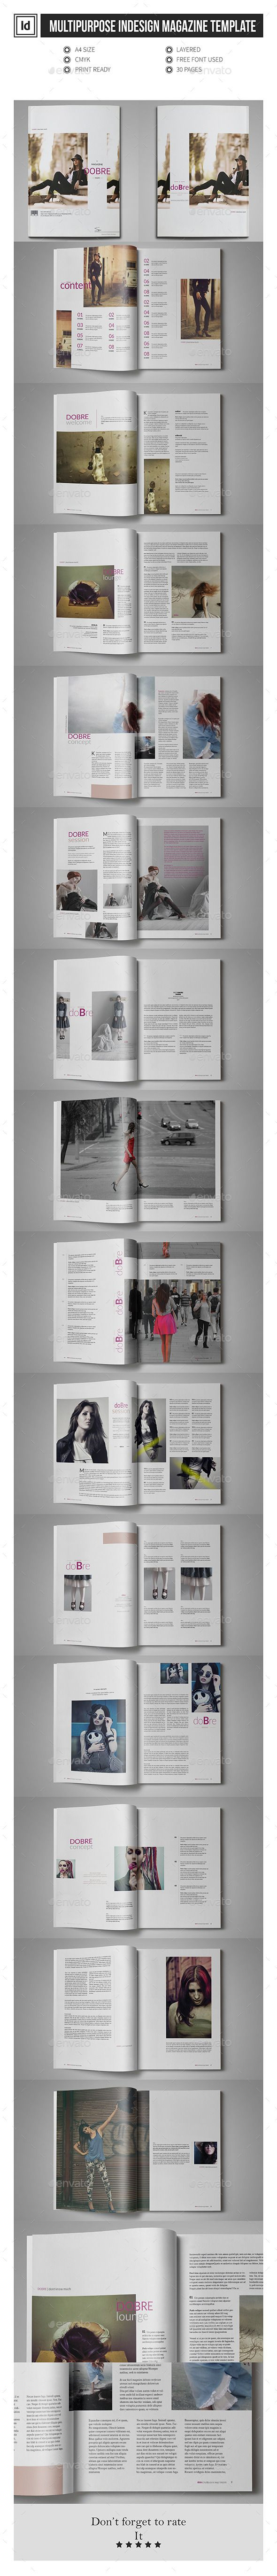 Multipurpose InDesign Magazine Template #design Download: http://graphicriver.net/item/multipurpose-indesign-magazine-template/12684112?ref=ksioks